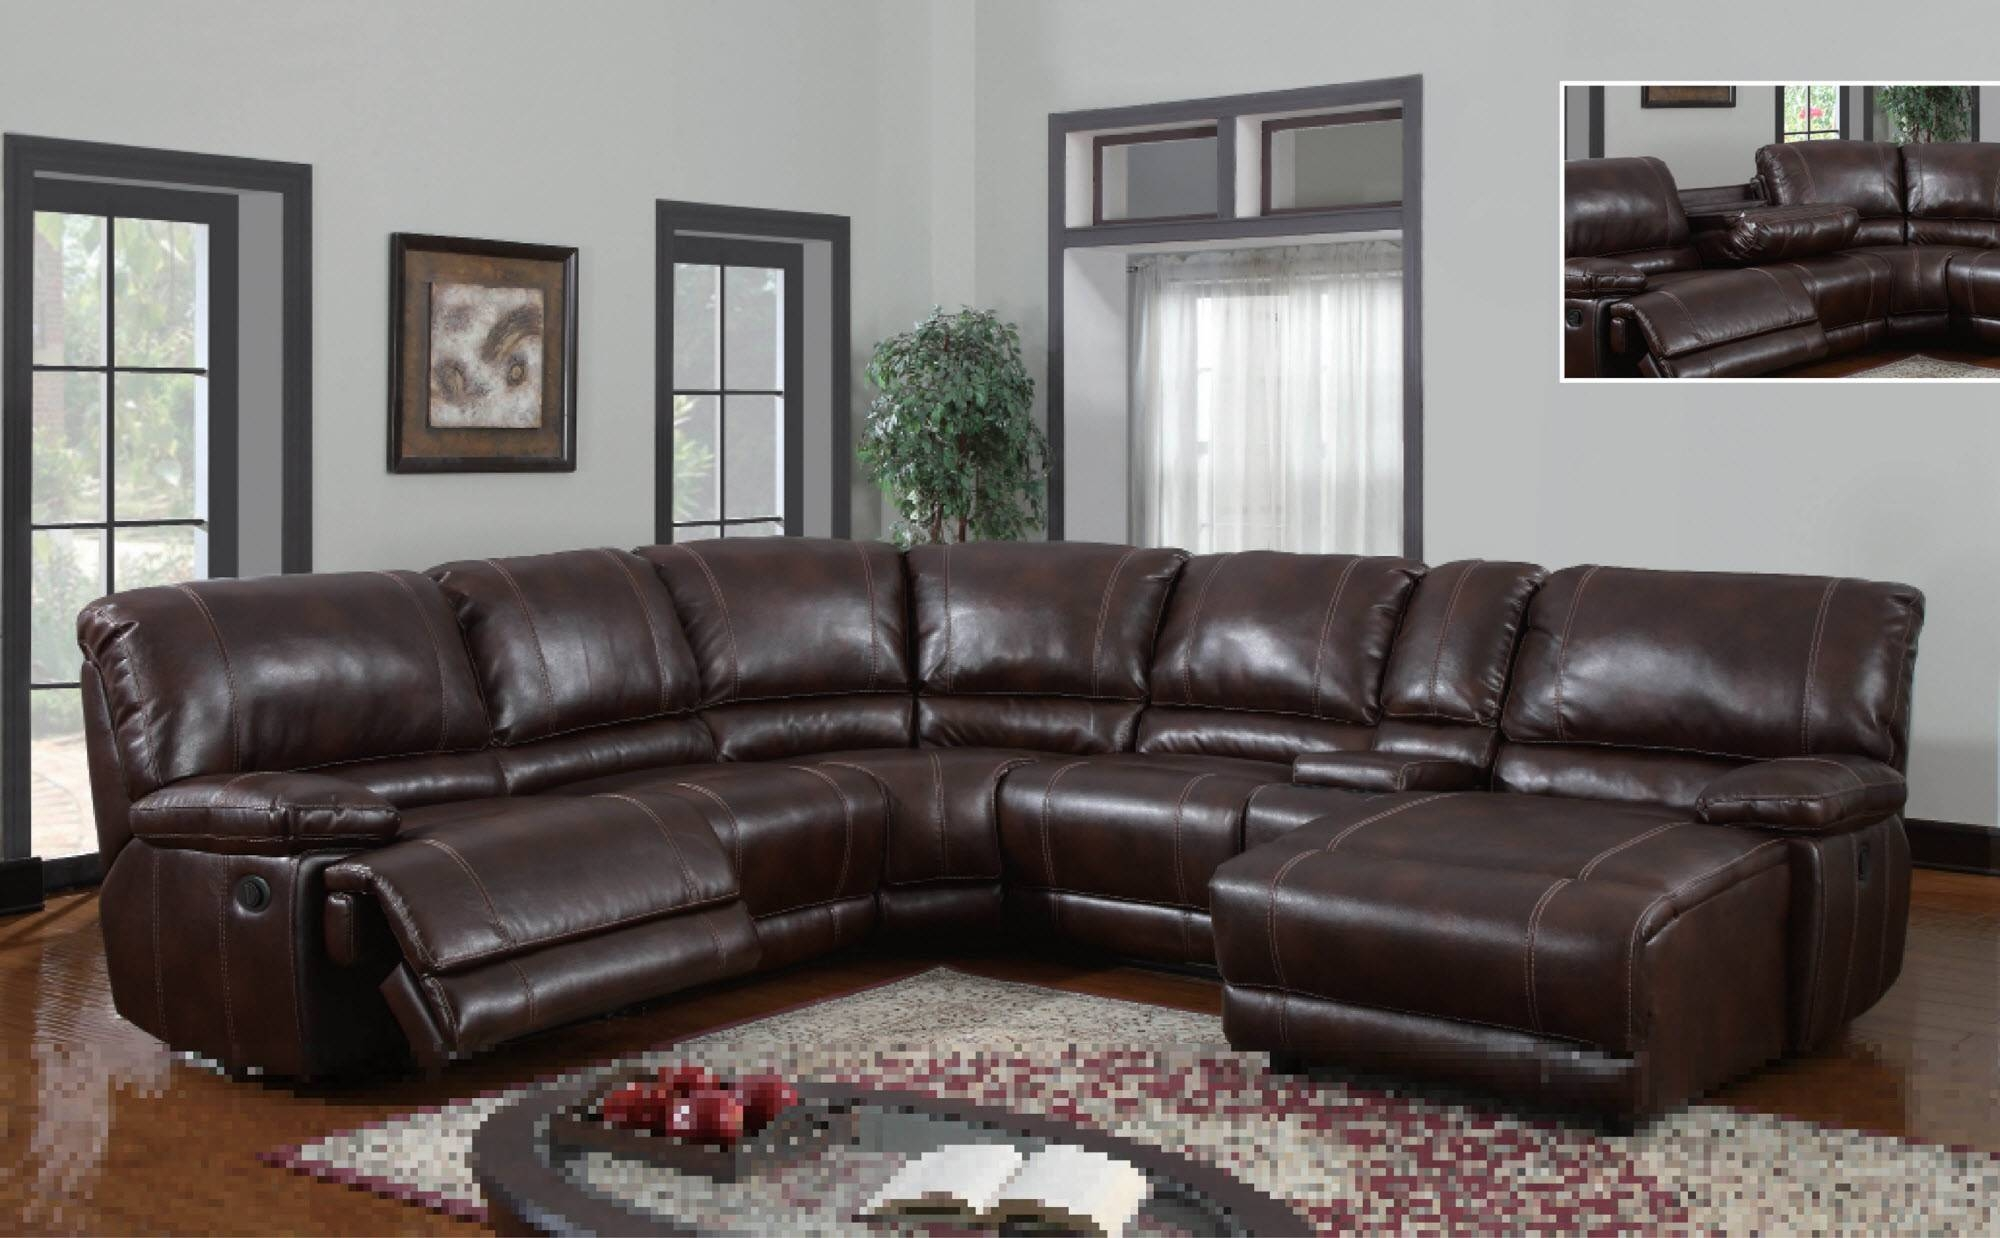 Microfiber Sectional Sofa Chaise Recliner | Centerfieldbar Throughout Black Leather Chaise Sofas (View 8 of 15)